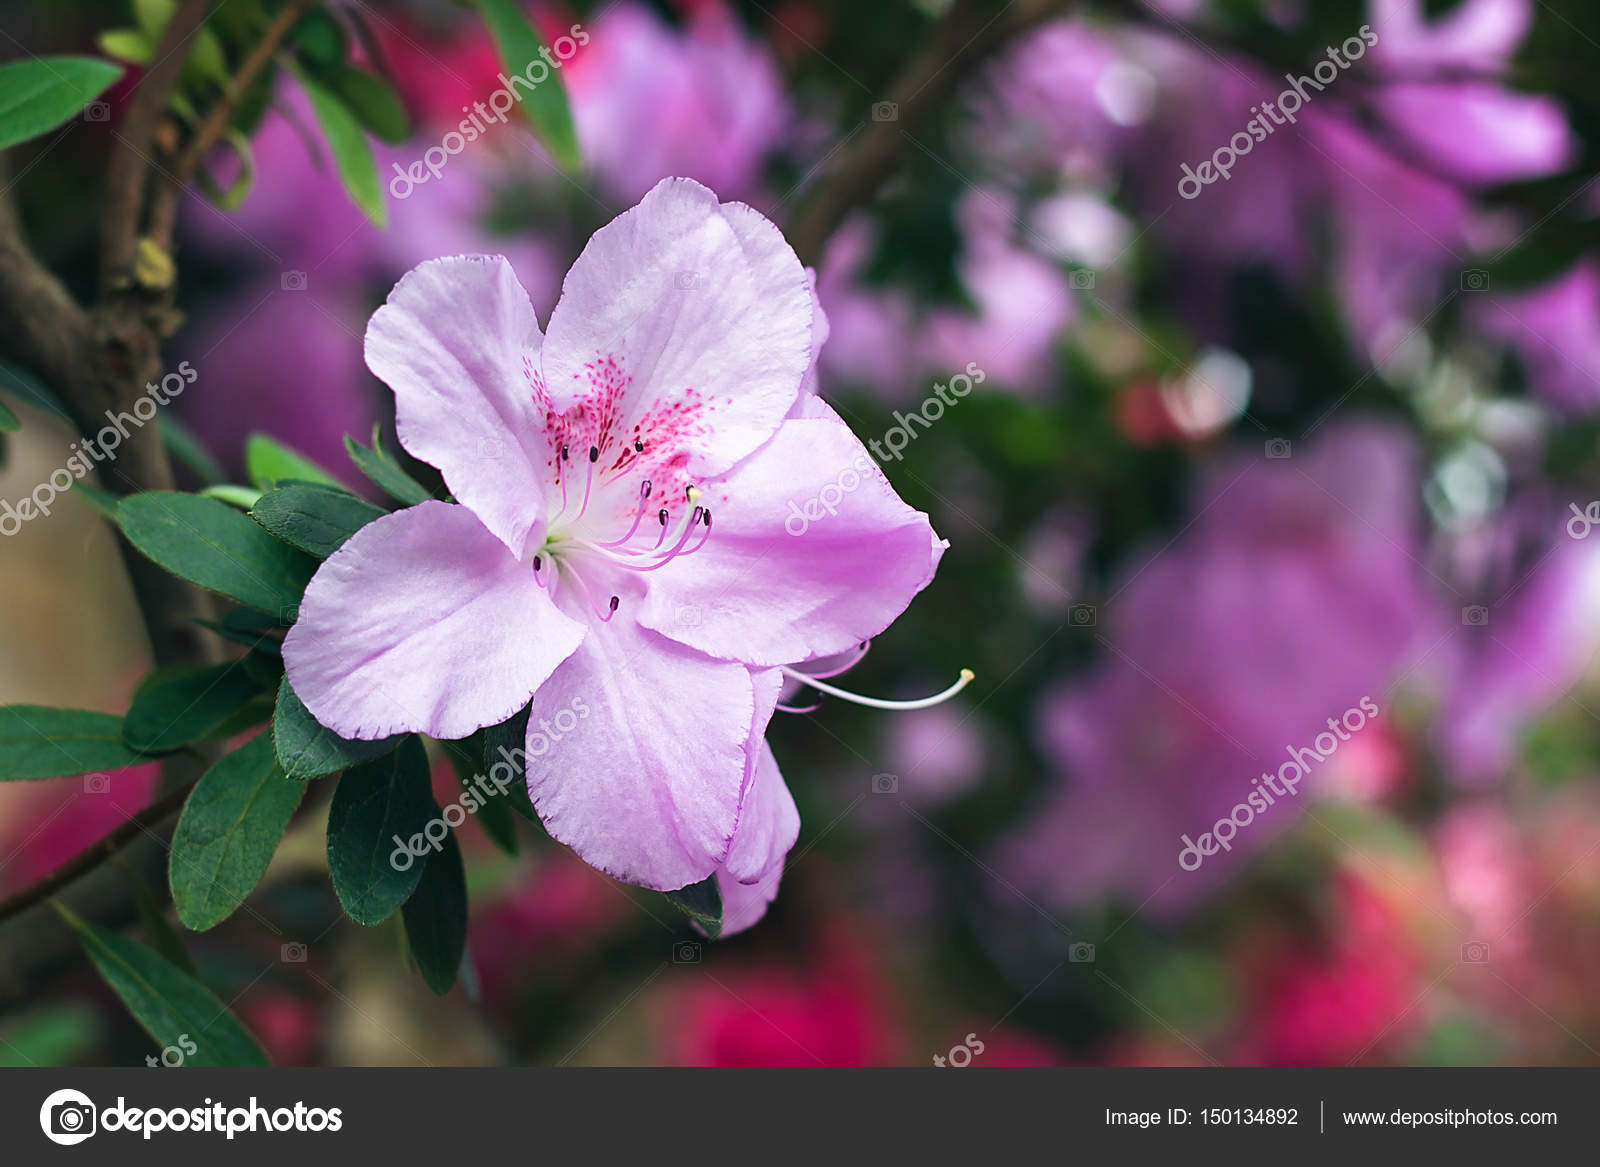 https://st3.depositphotos.com/7043674/15013/i/1600/depositphotos_150134892-stock-photo-beautiful-pink-rhododendron-tree-blossoms.jpg